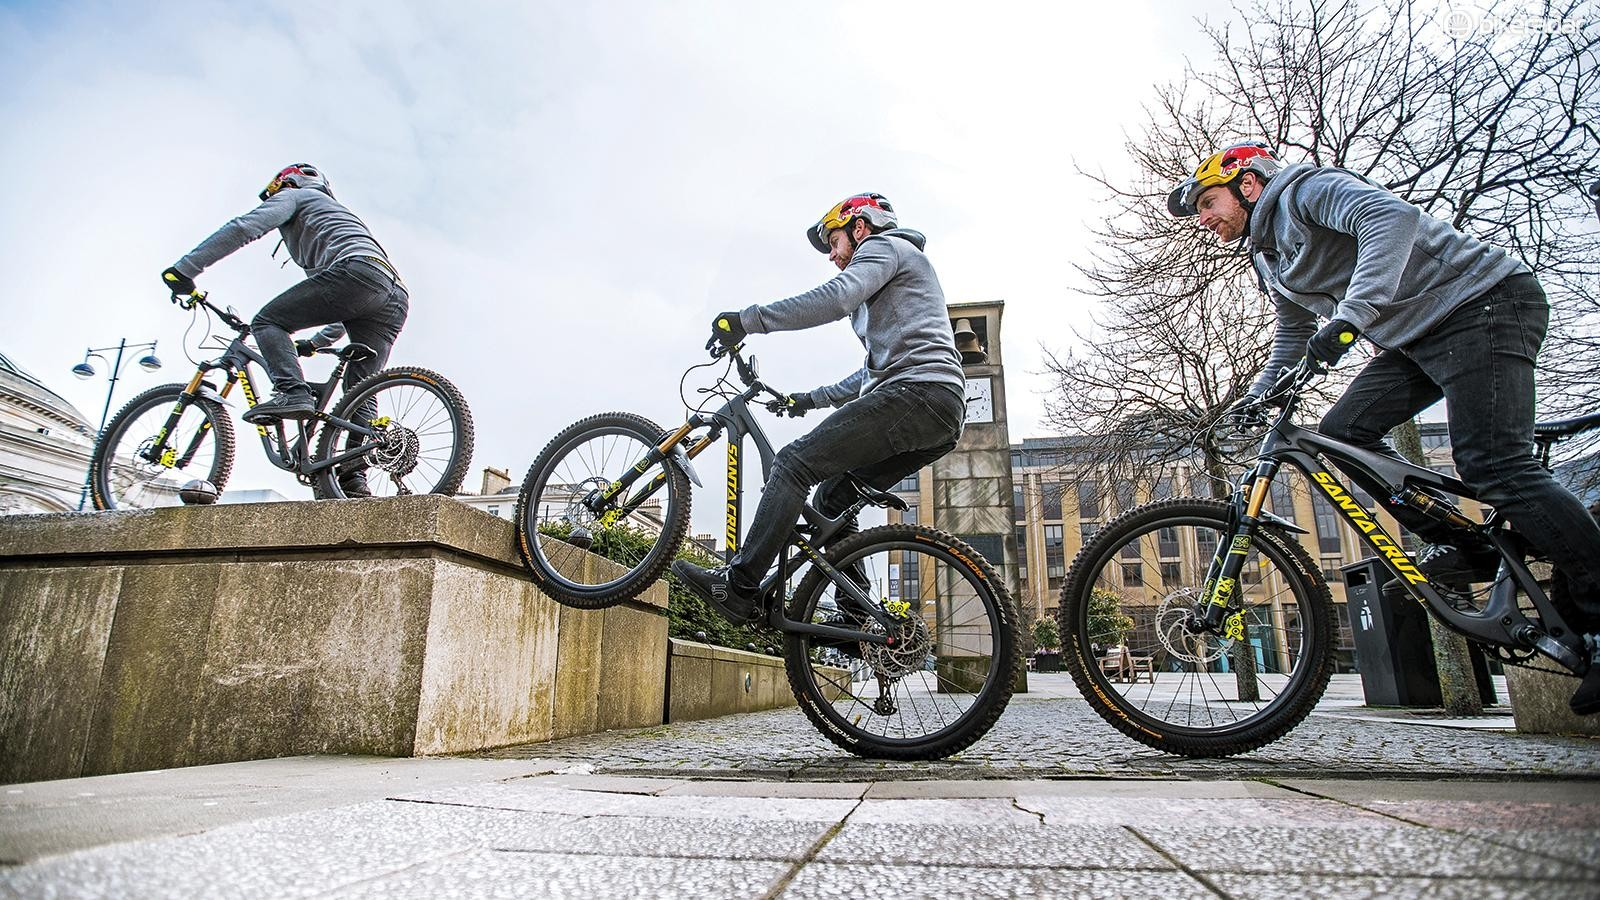 Tap your front wheel on the edge of the obstacle to help bounce yourself up on to it